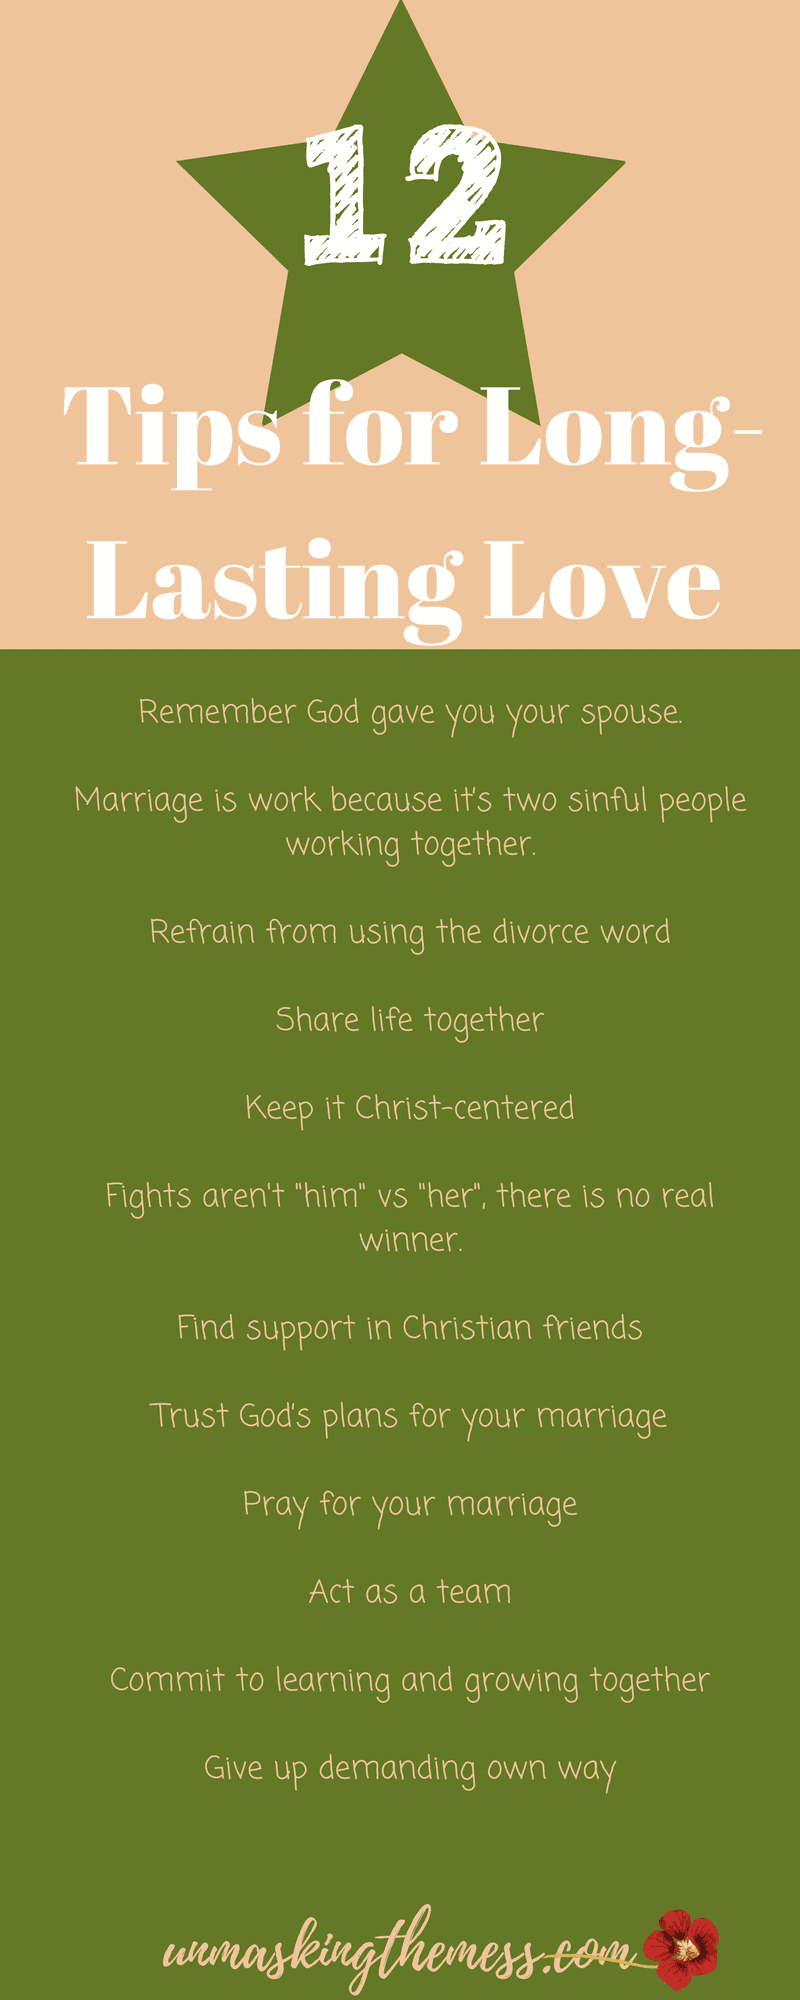 12 Ultimate Tips for Long-Lasting Love.In our culture, it's a struggle to remain in a long-lasting marriage. Death was intended to be the end of the marriage covenant. #quotes #truths #God #articles #God